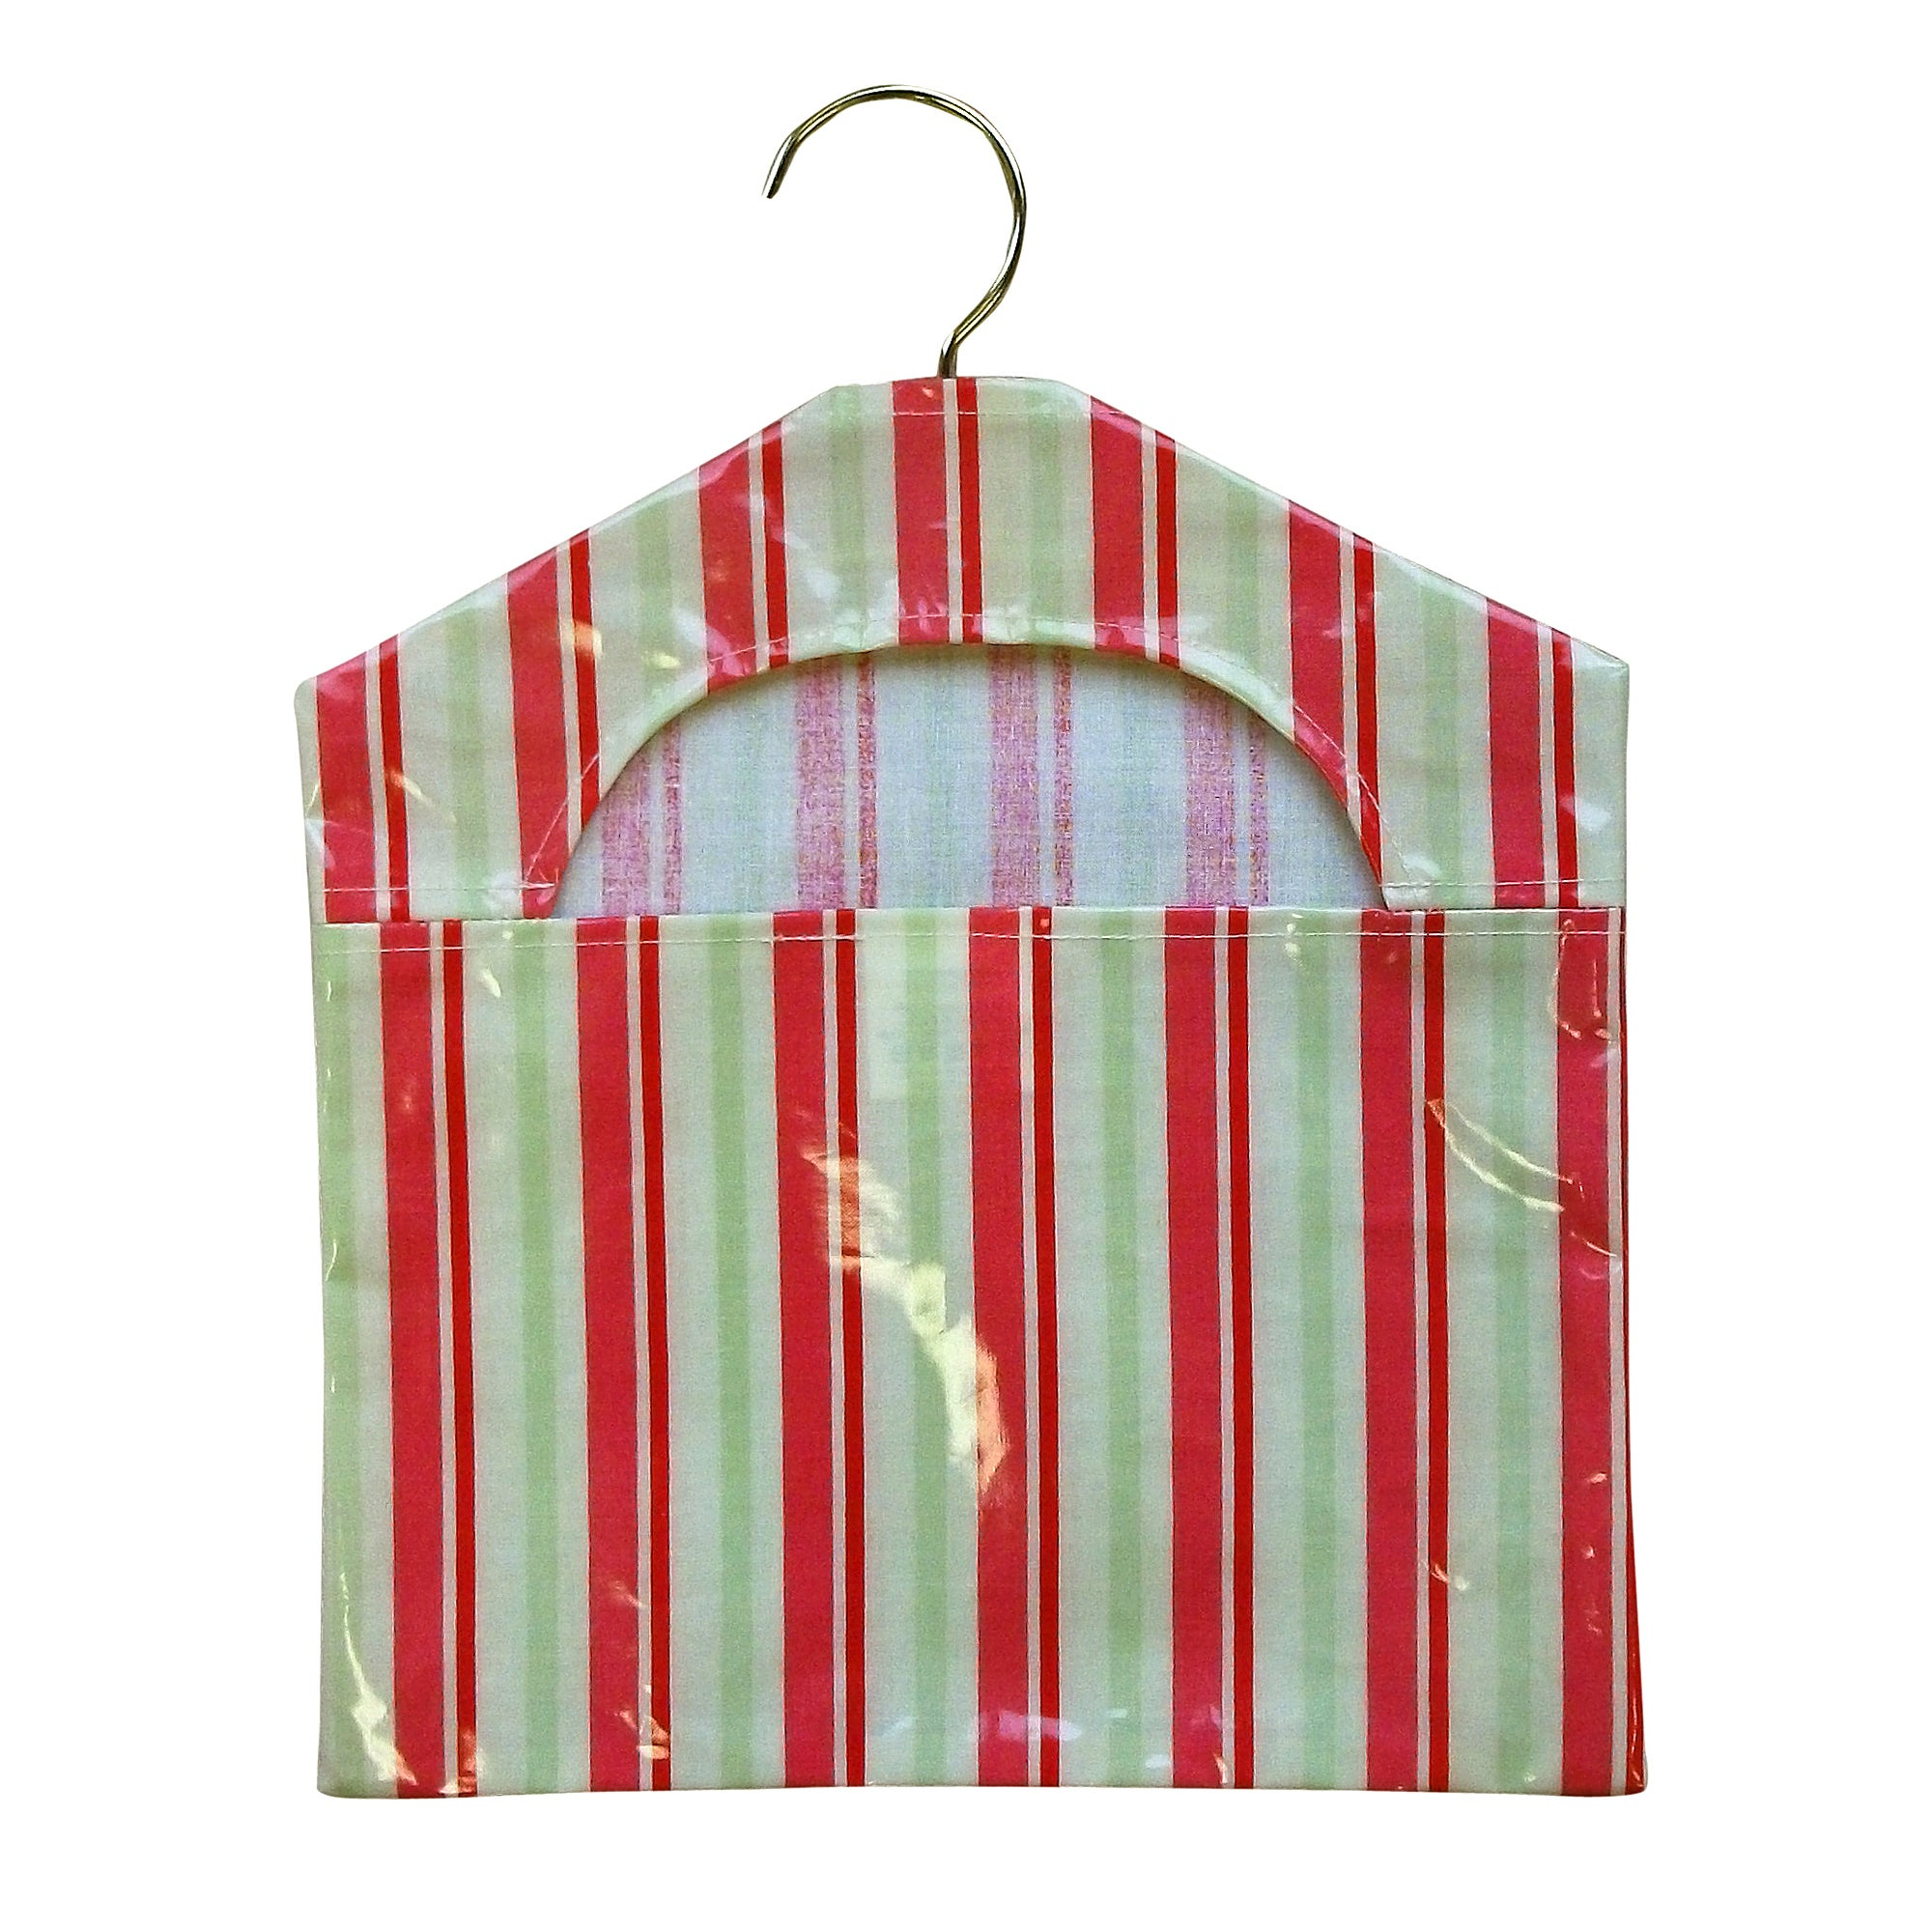 Stripe PVC Peg Bag